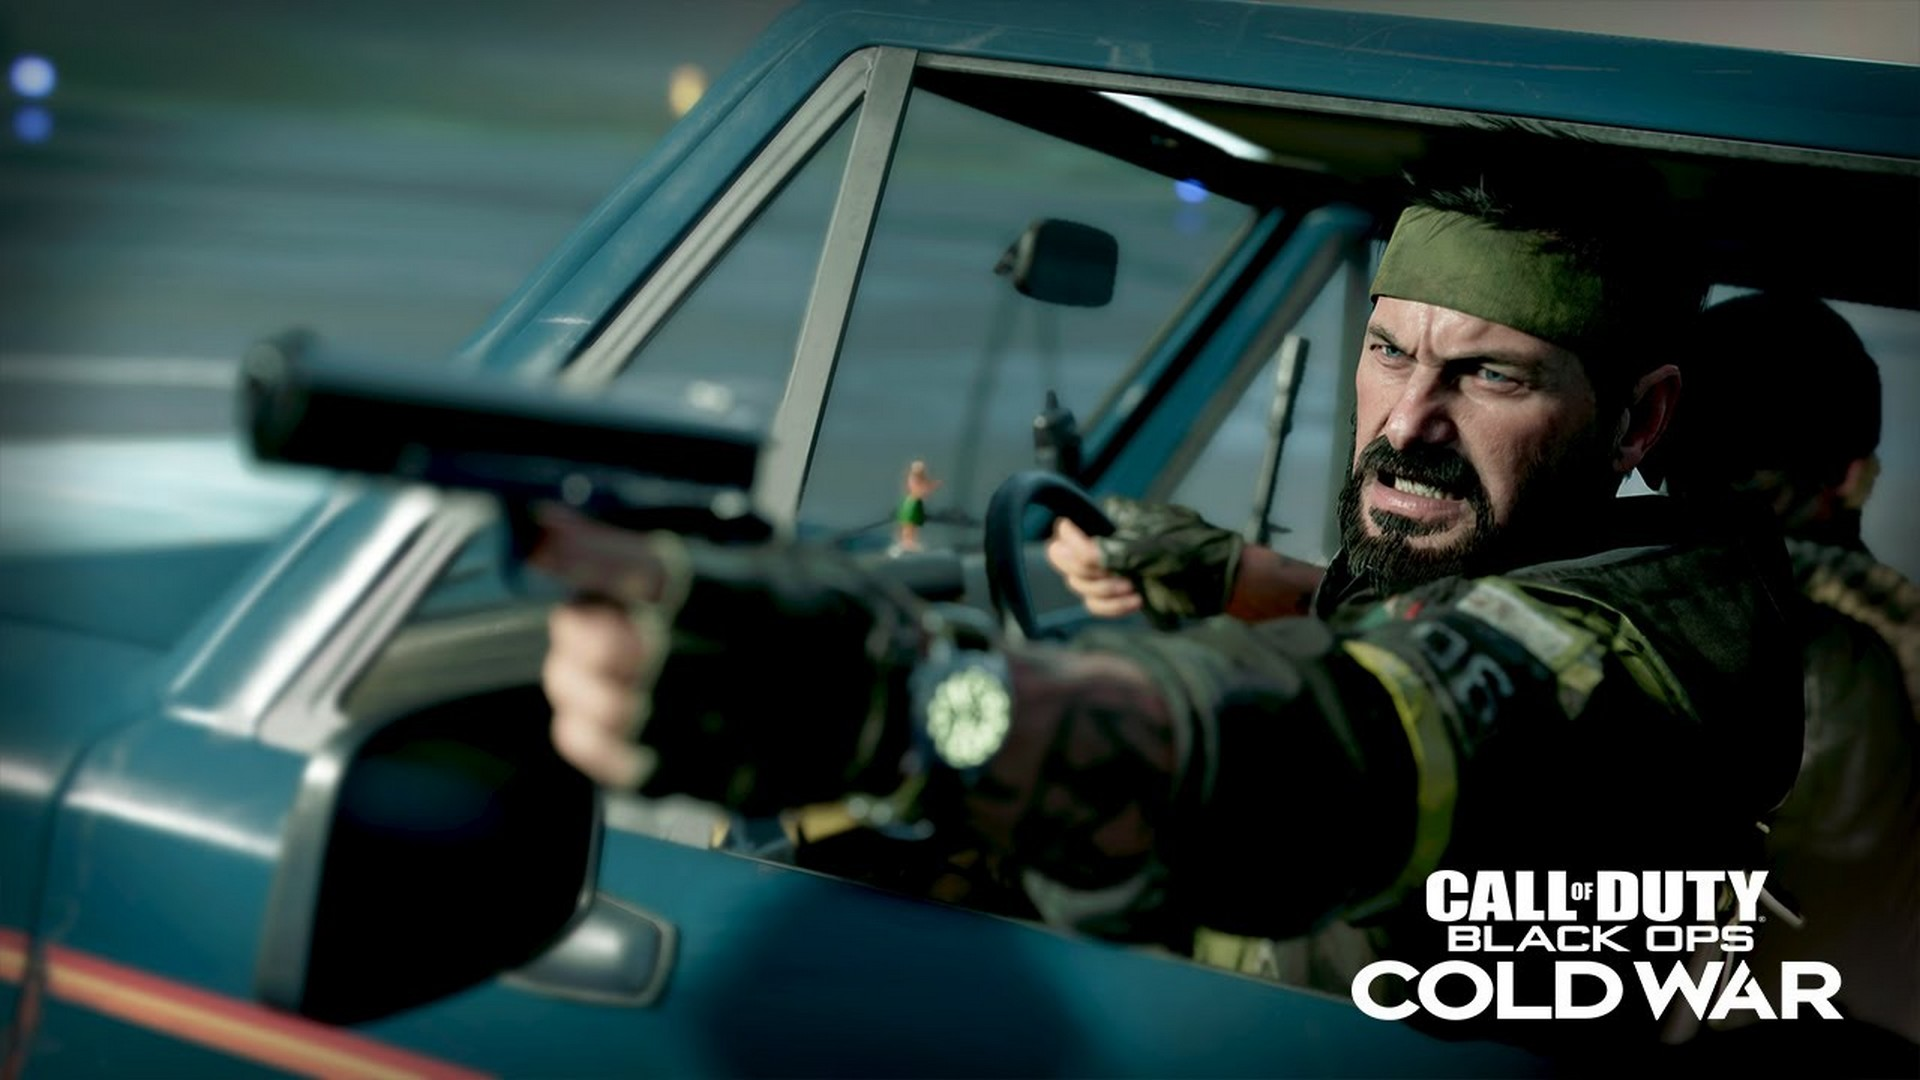 """Call of Duty: Black Ops Cold War """"Nowhere Left to Run"""" Teaser Trailer"""